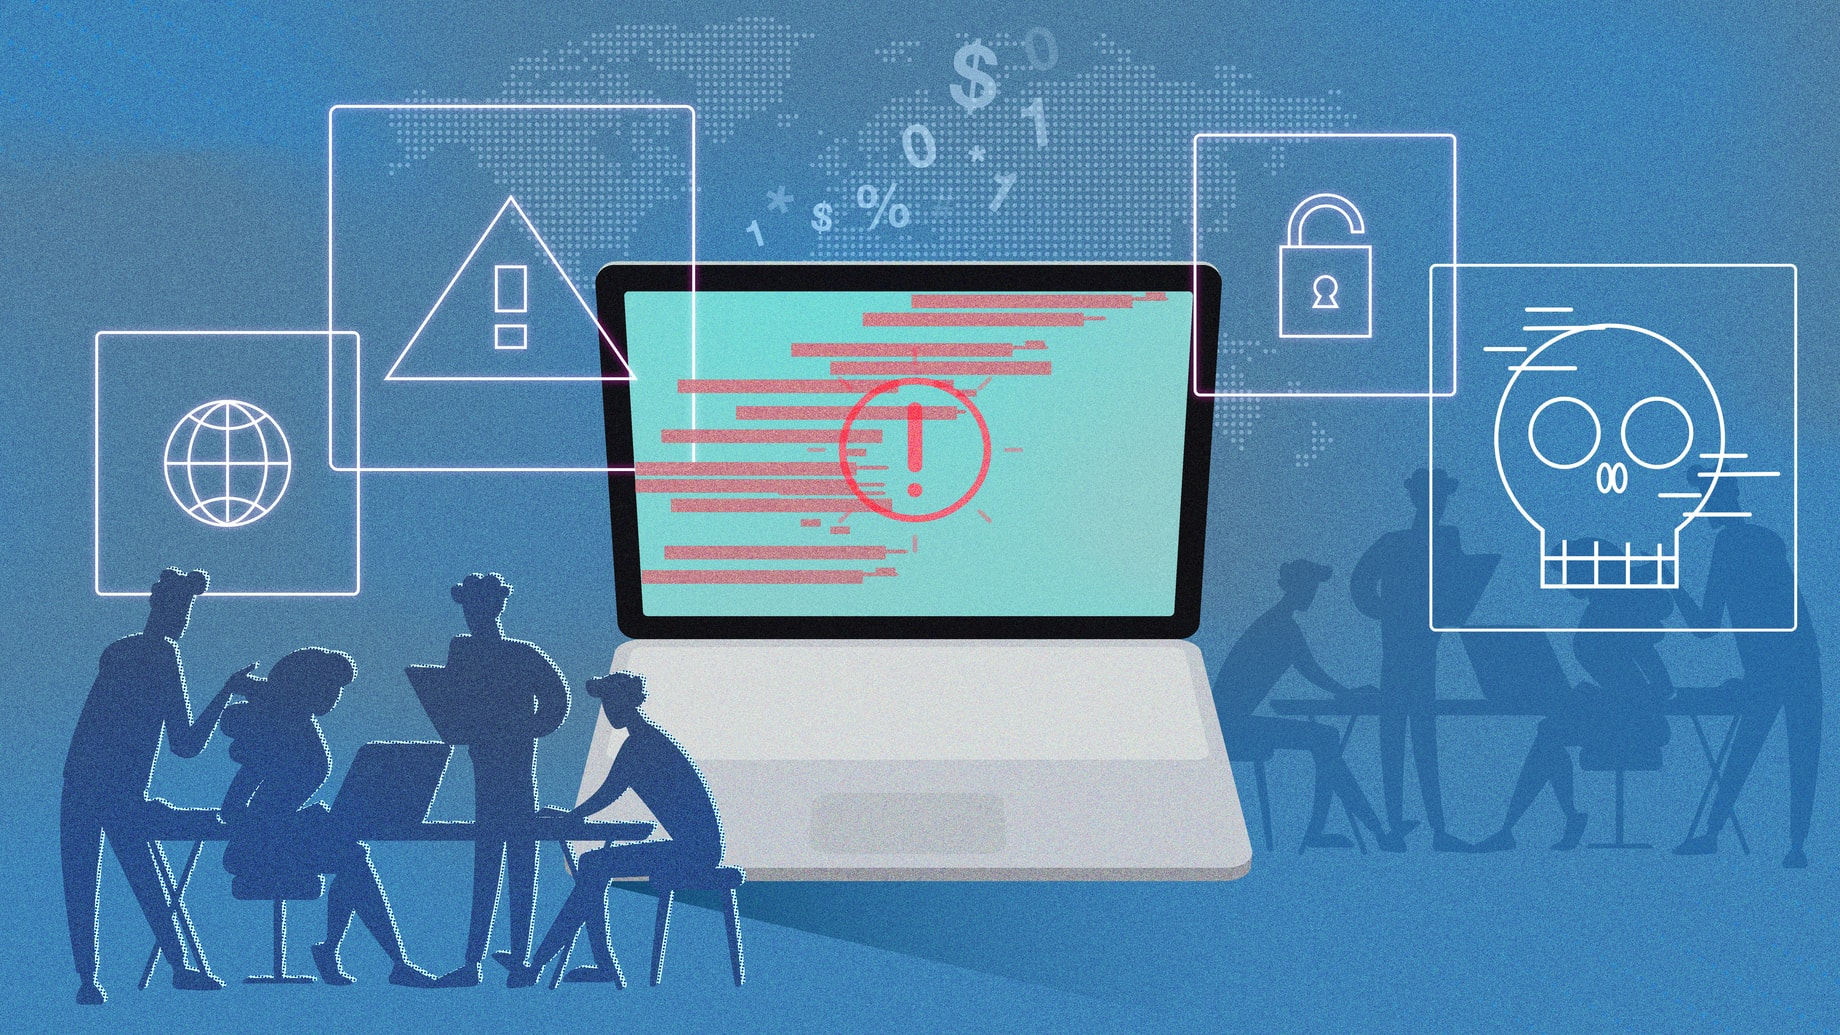 Non-profit organization targeted by cyberattack: valuable lessons for you